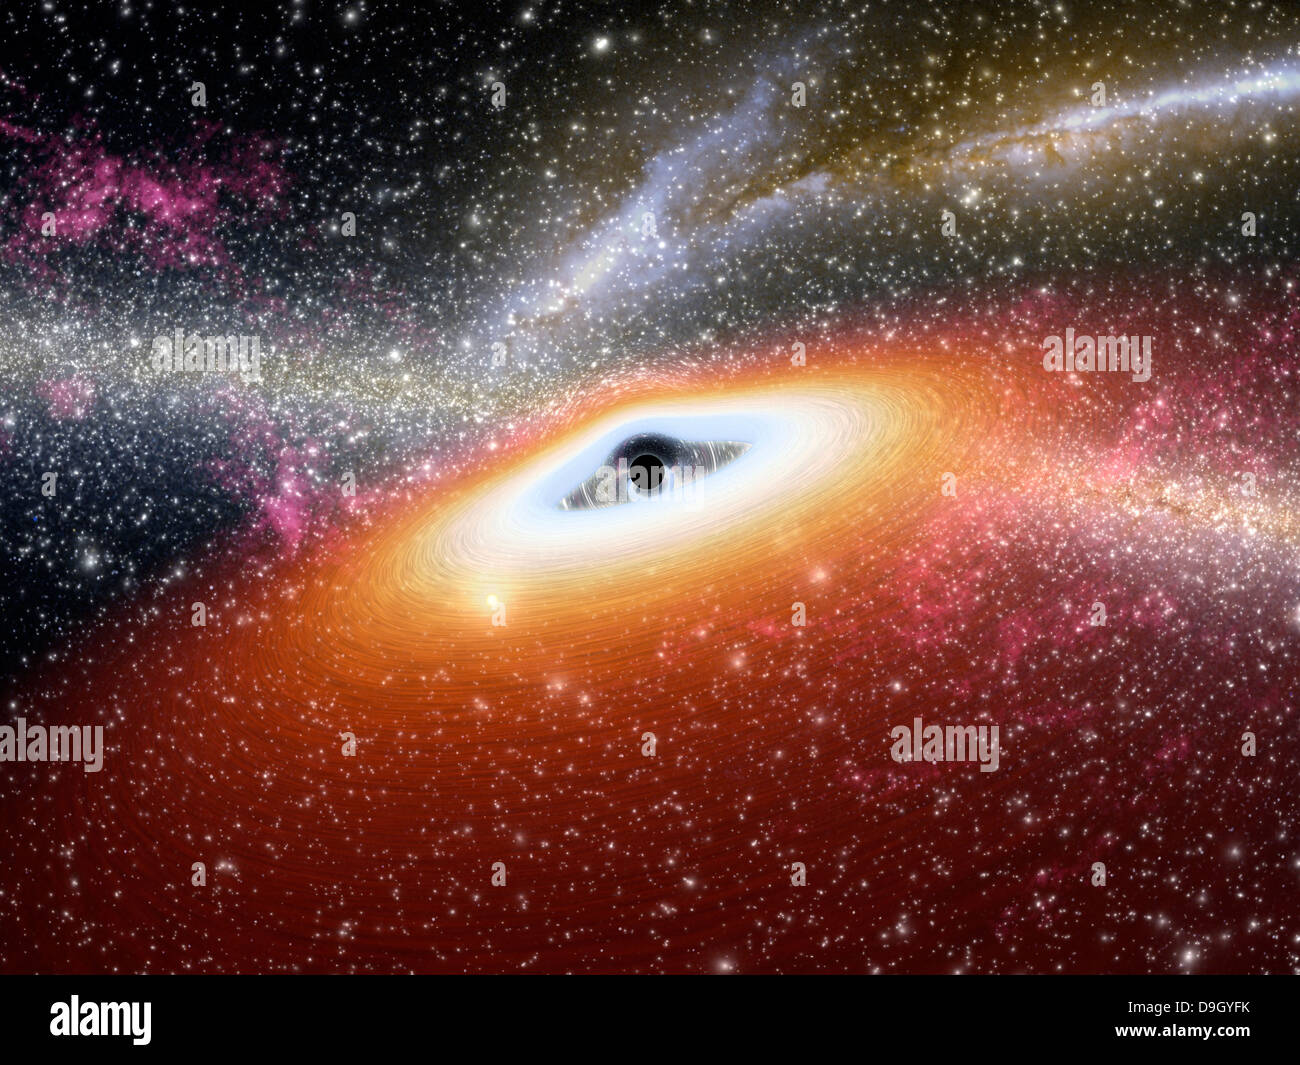 Illustration of a supermassive black hole at the core of a young, star-rich galaxy - Stock Image